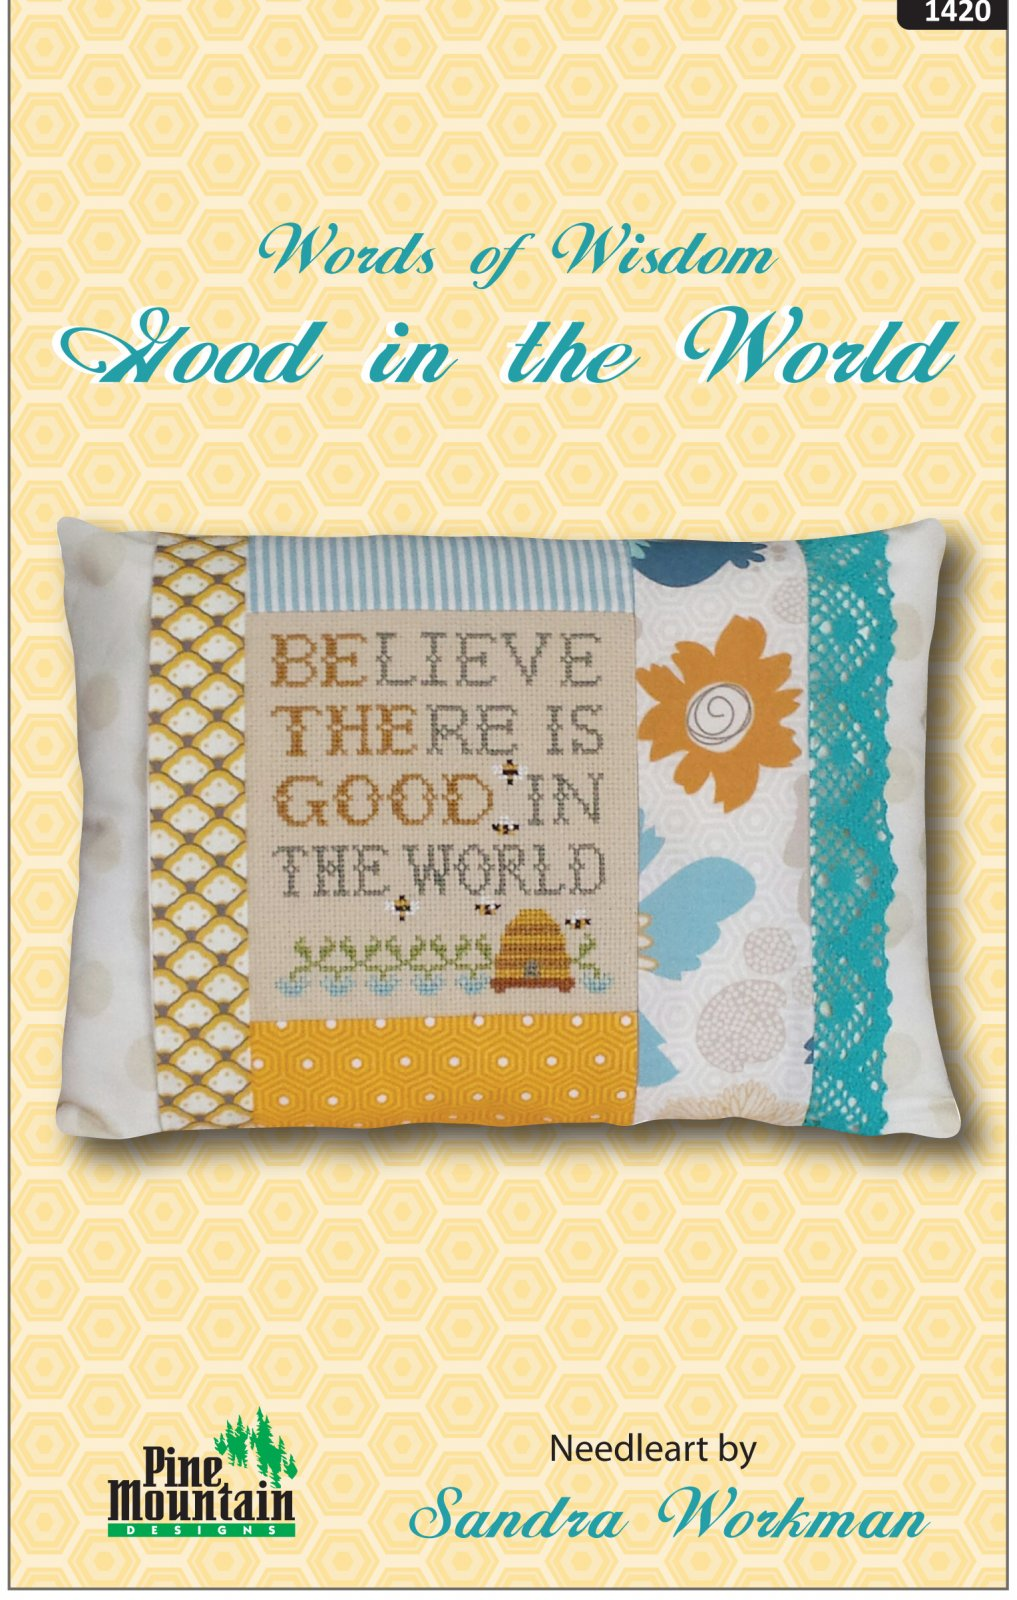 Believe there is Good  - Words of Wisdom 1420